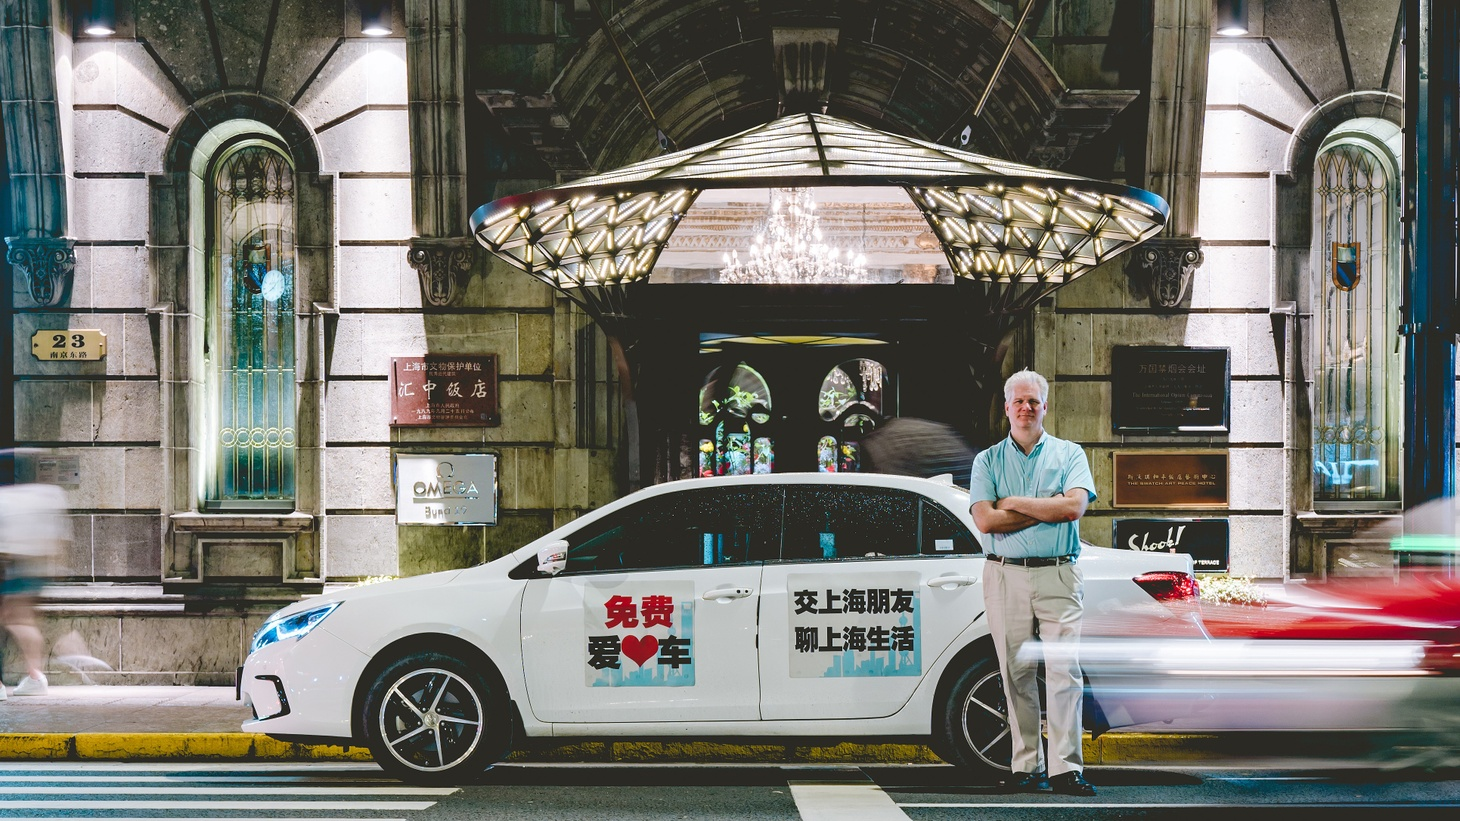 Reporter Frank Langfitt poses with his taxi in Shanghai.